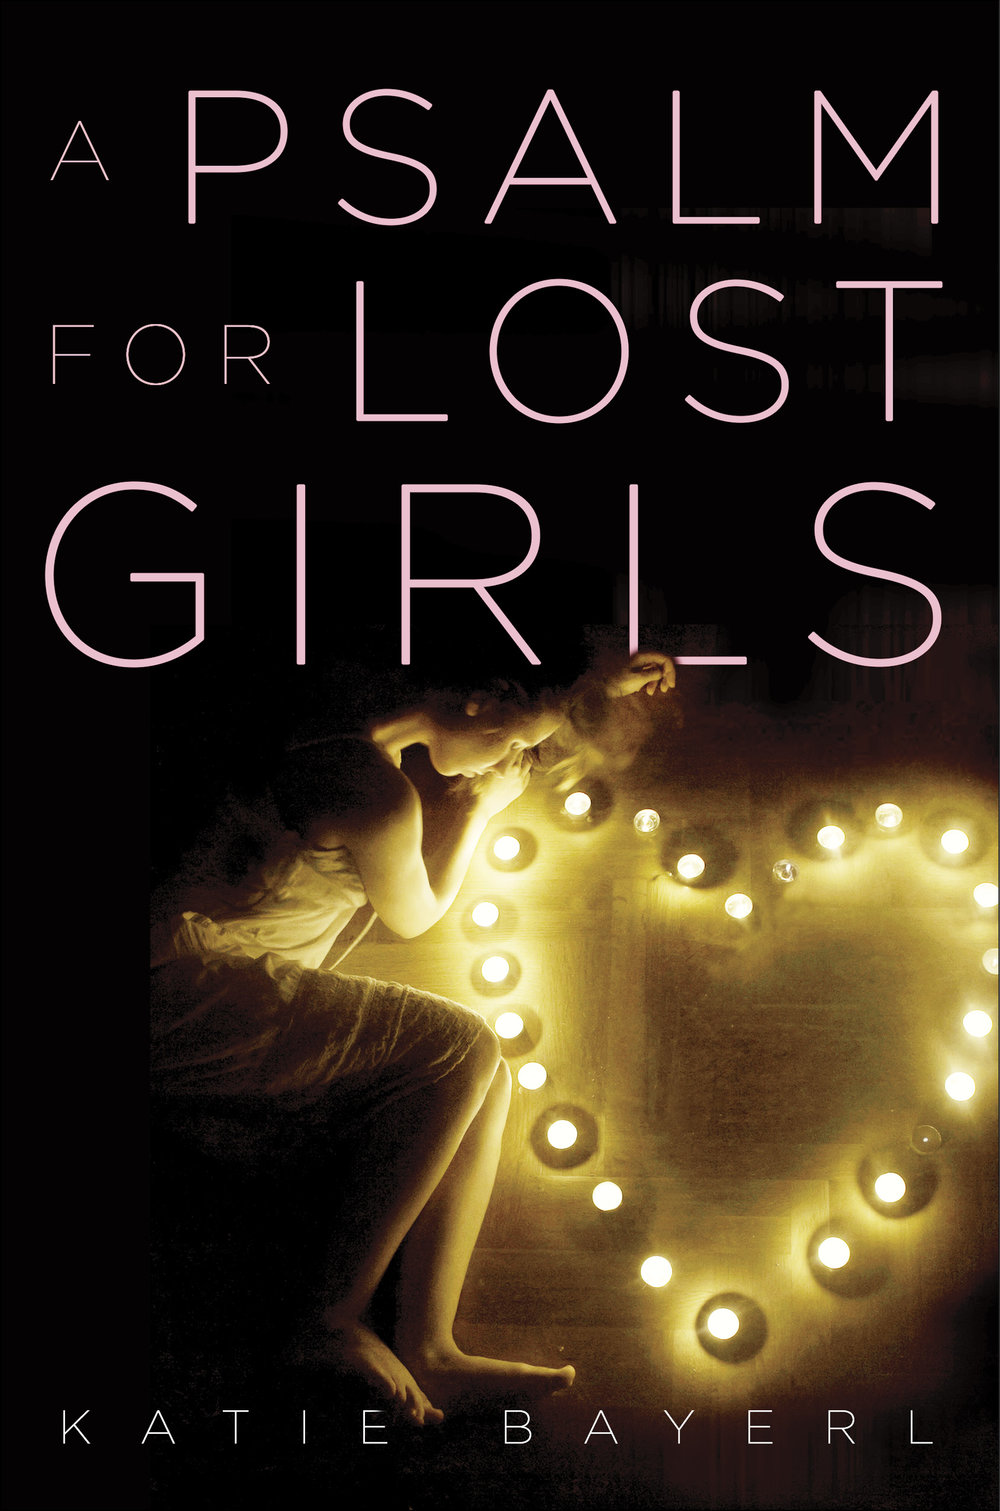 A PSALM FOR LOST GIRLS cover.jpg